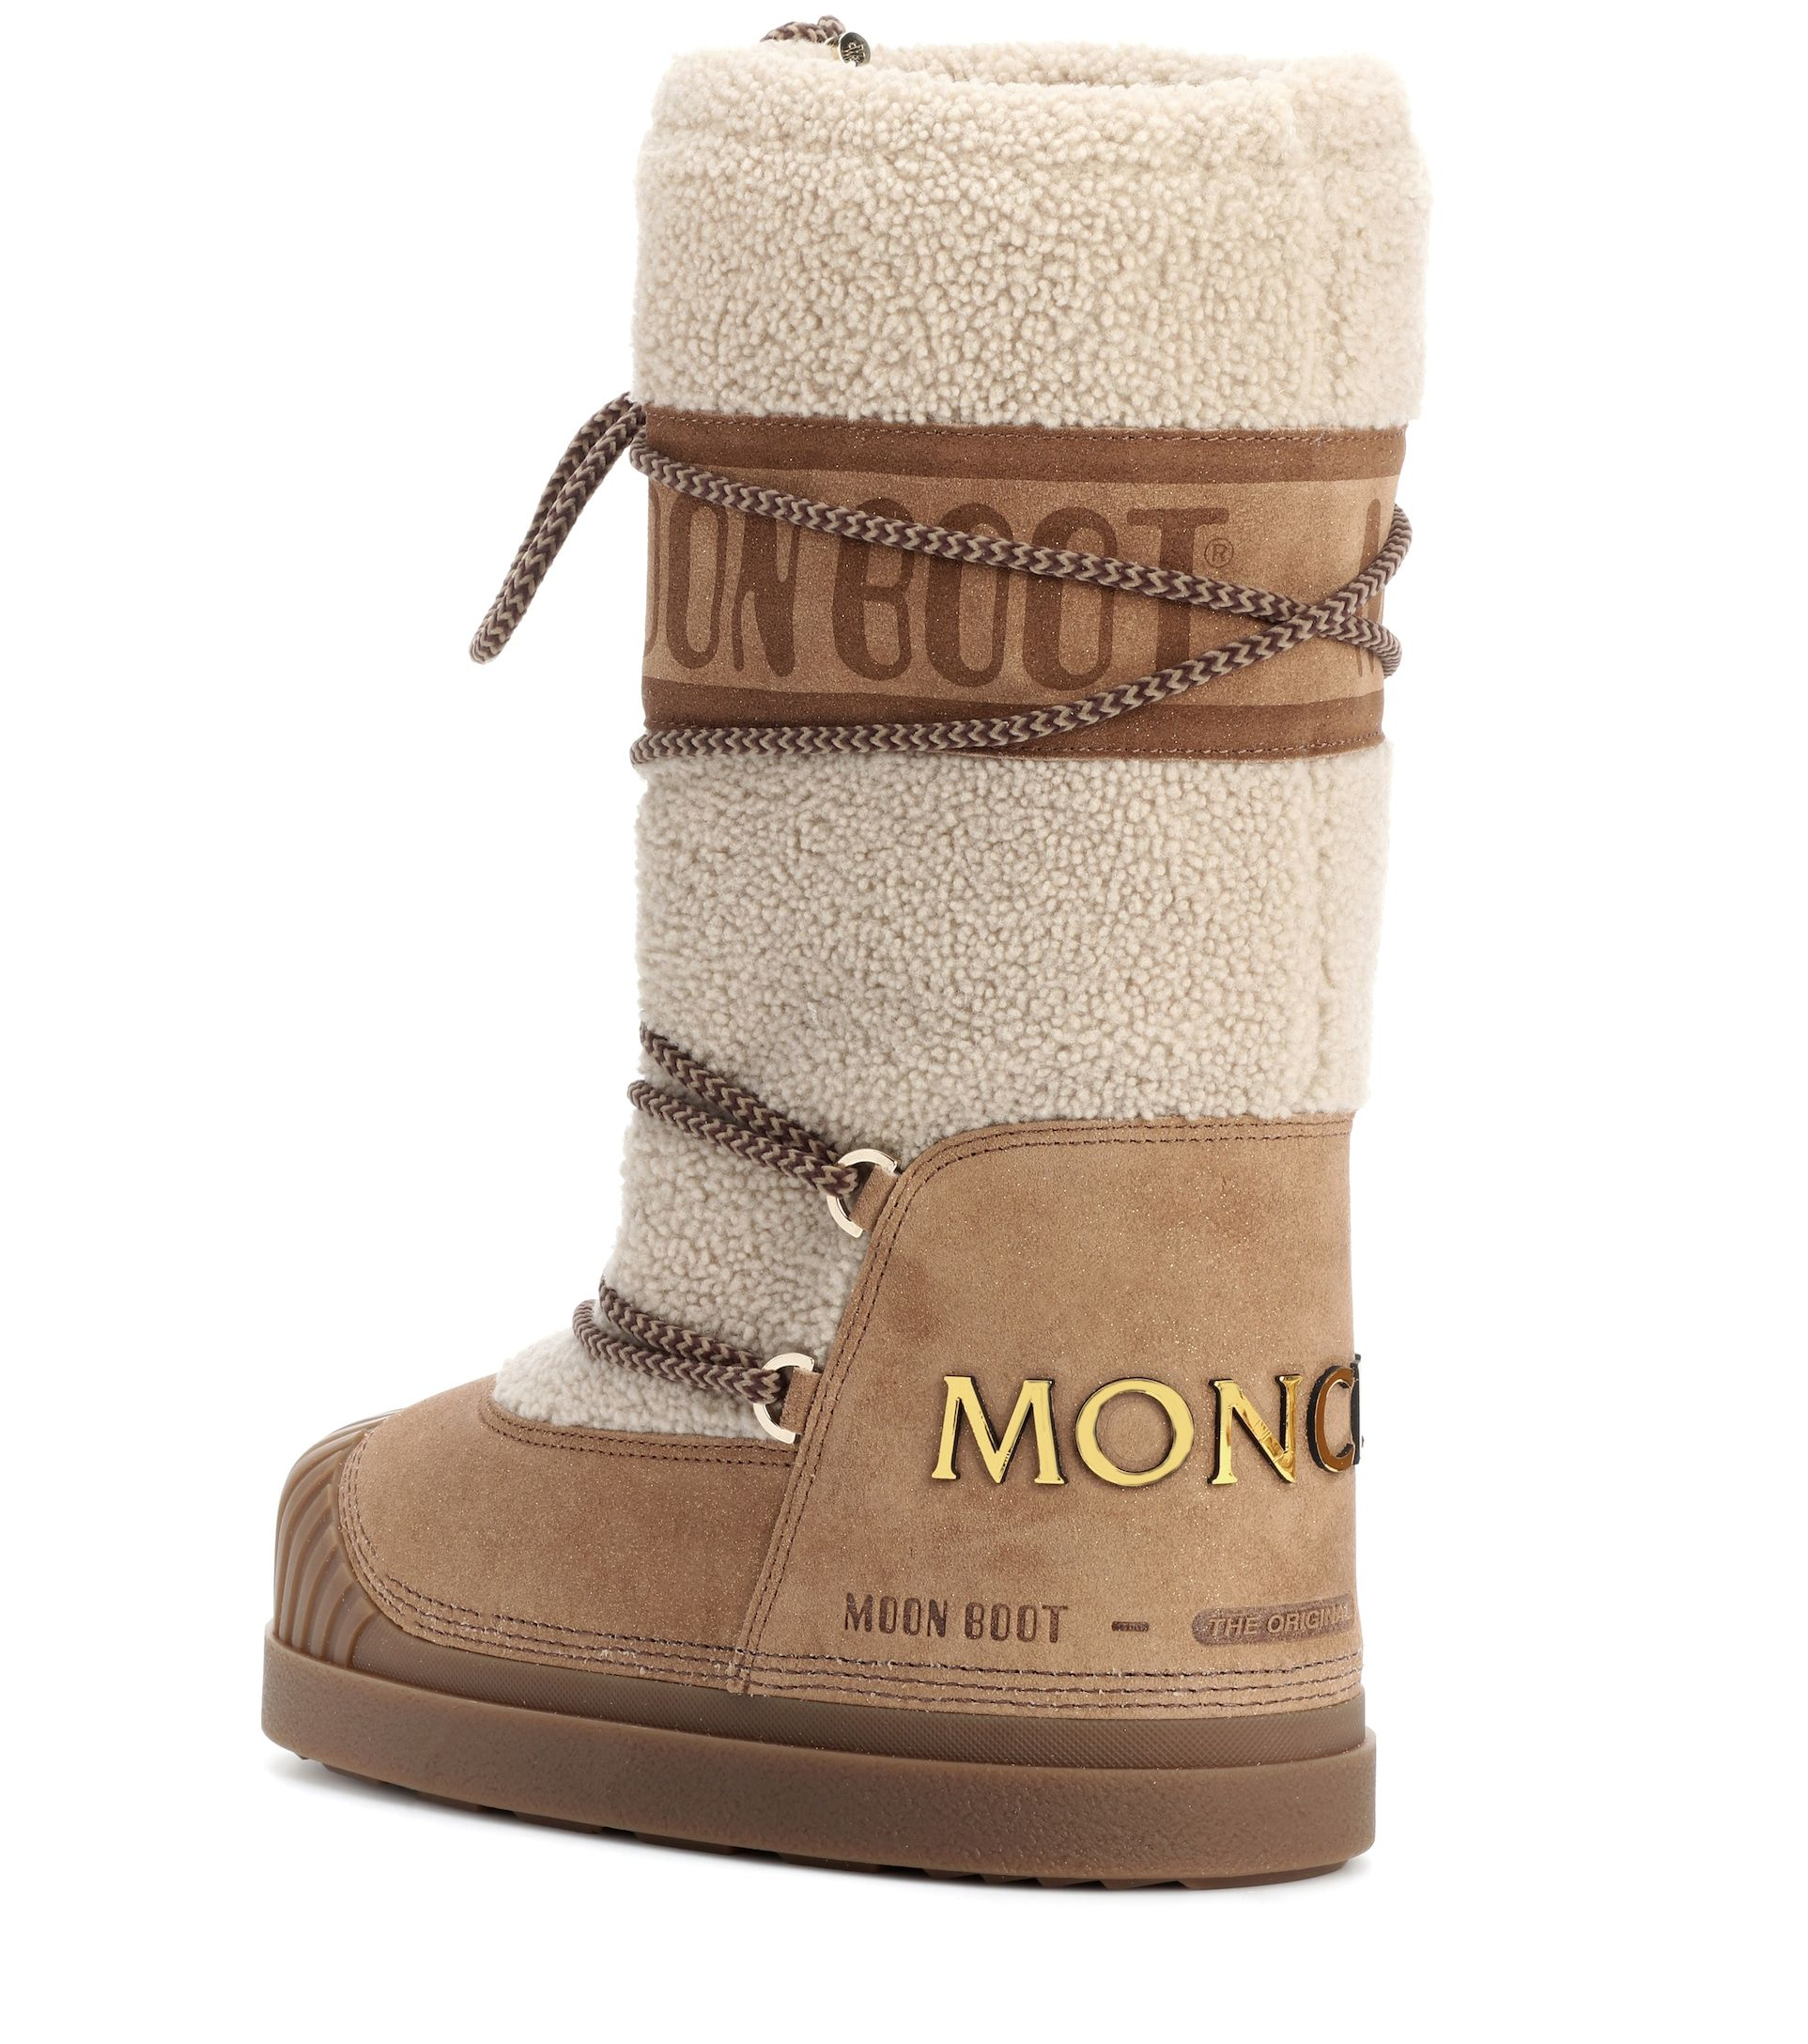 c506b71df X Moon Boot ® Ankle Boots - Moncler | mytheresa | Bags & Shoes, A ...